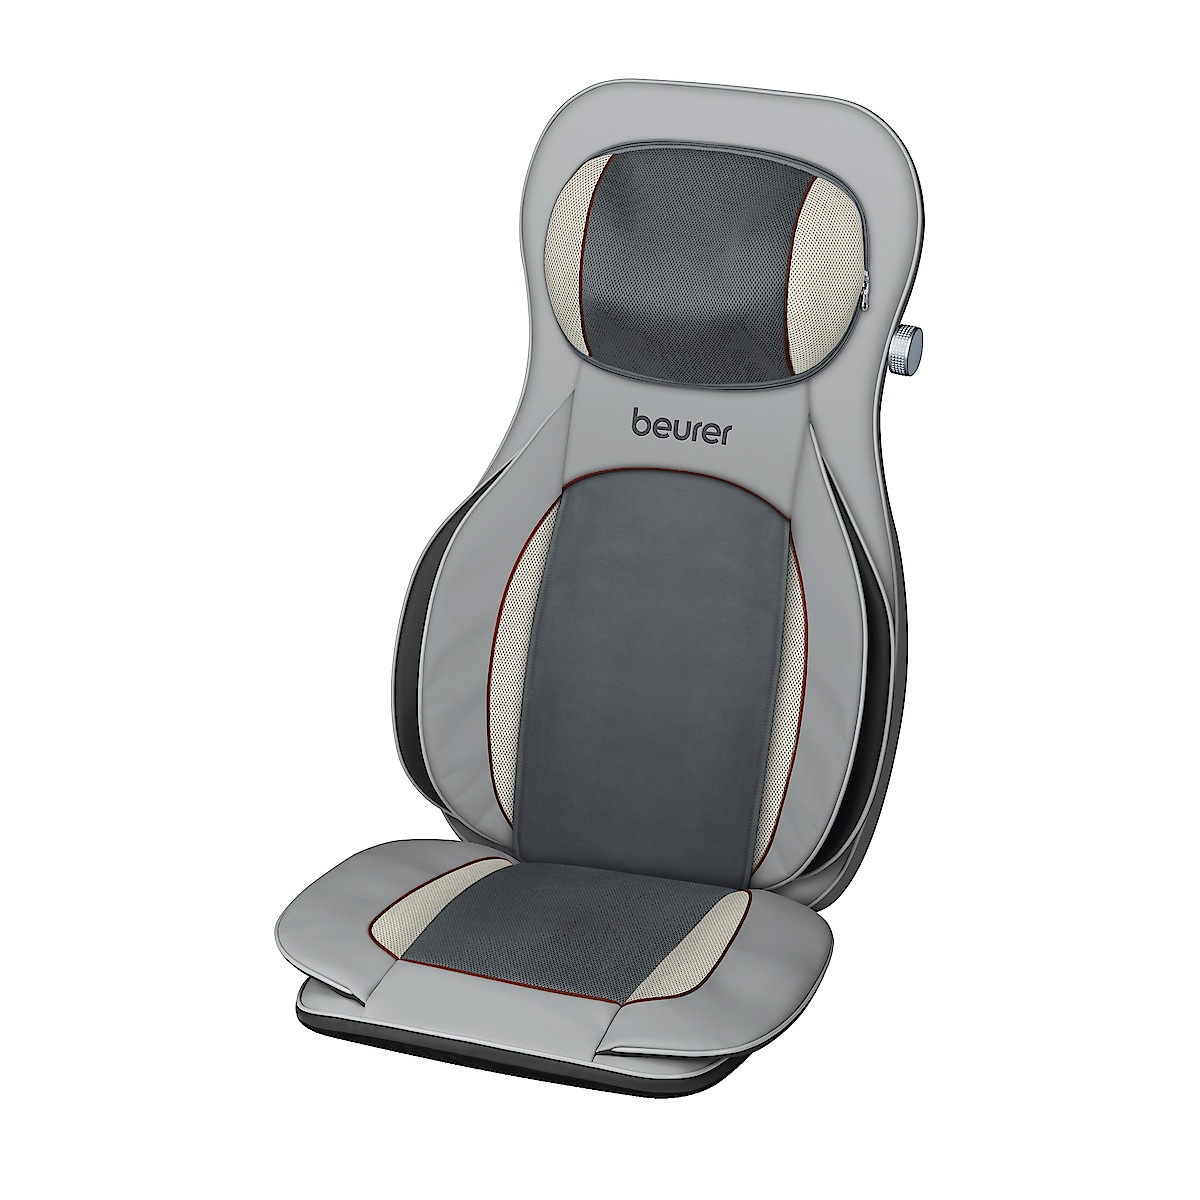 Massagesäte Shiatsu Beurer MG 320